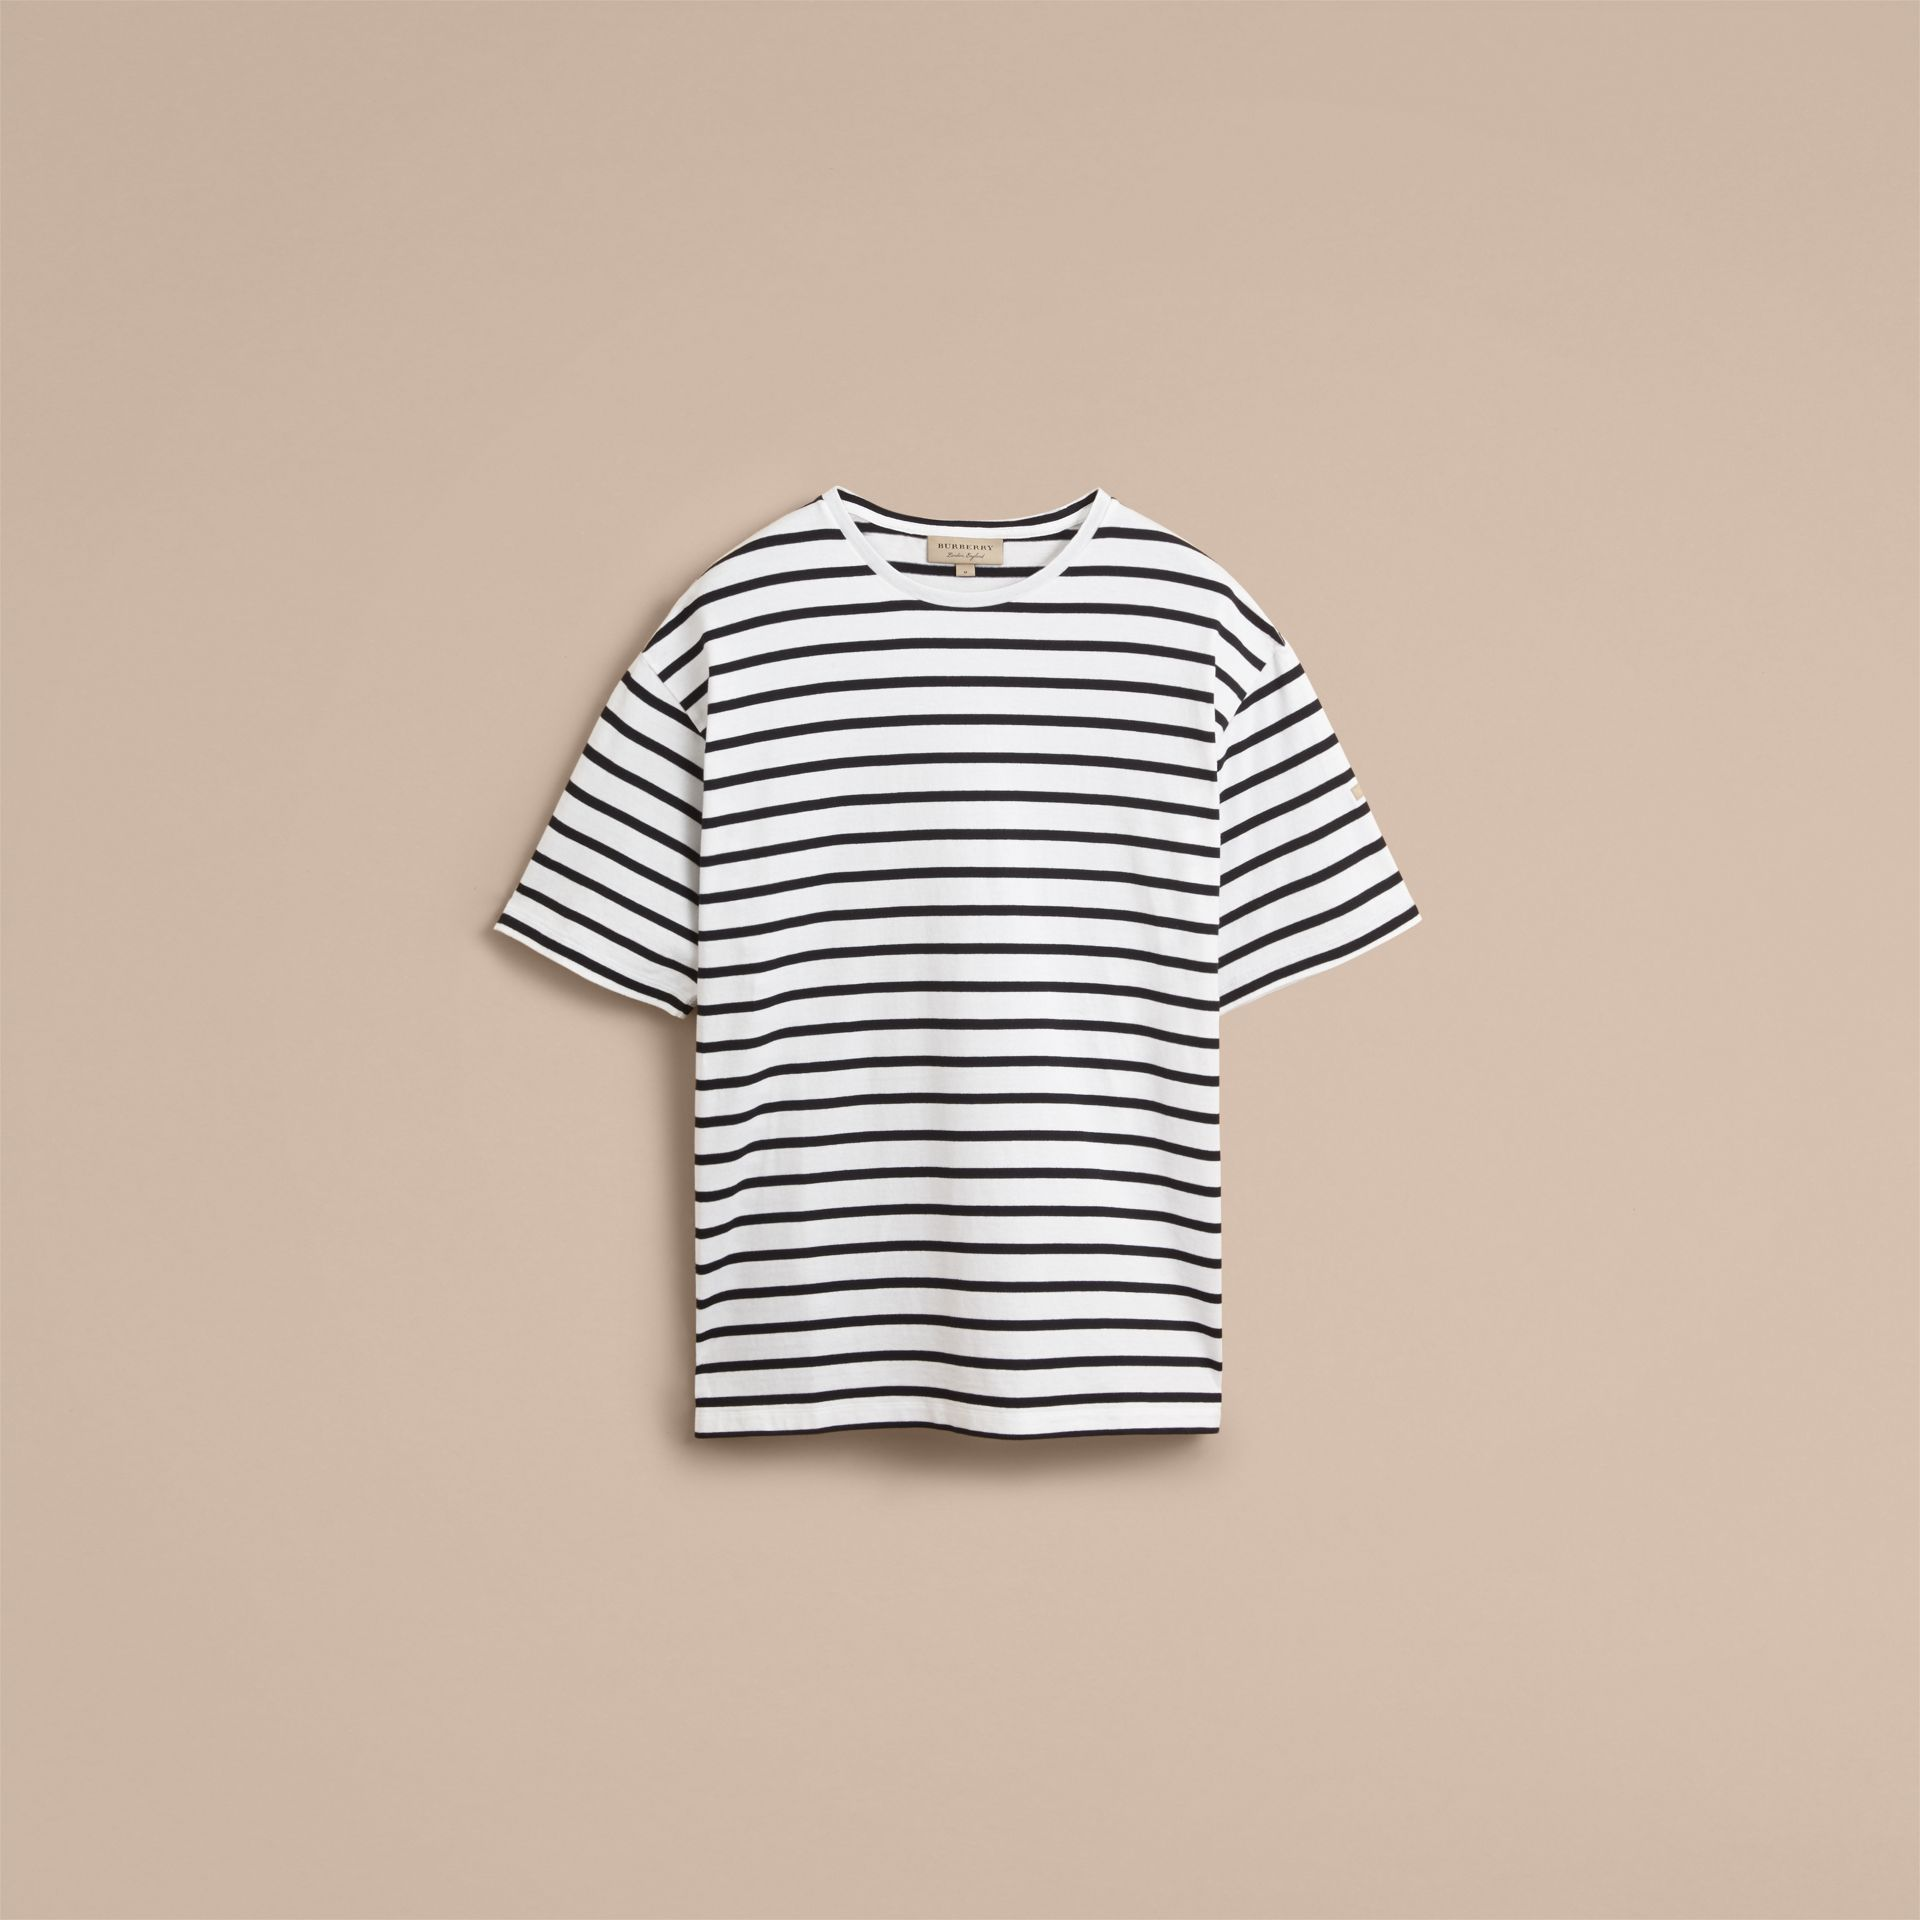 Striped Cotton Oversize T-shirt in White/black - Men | Burberry - gallery image 4